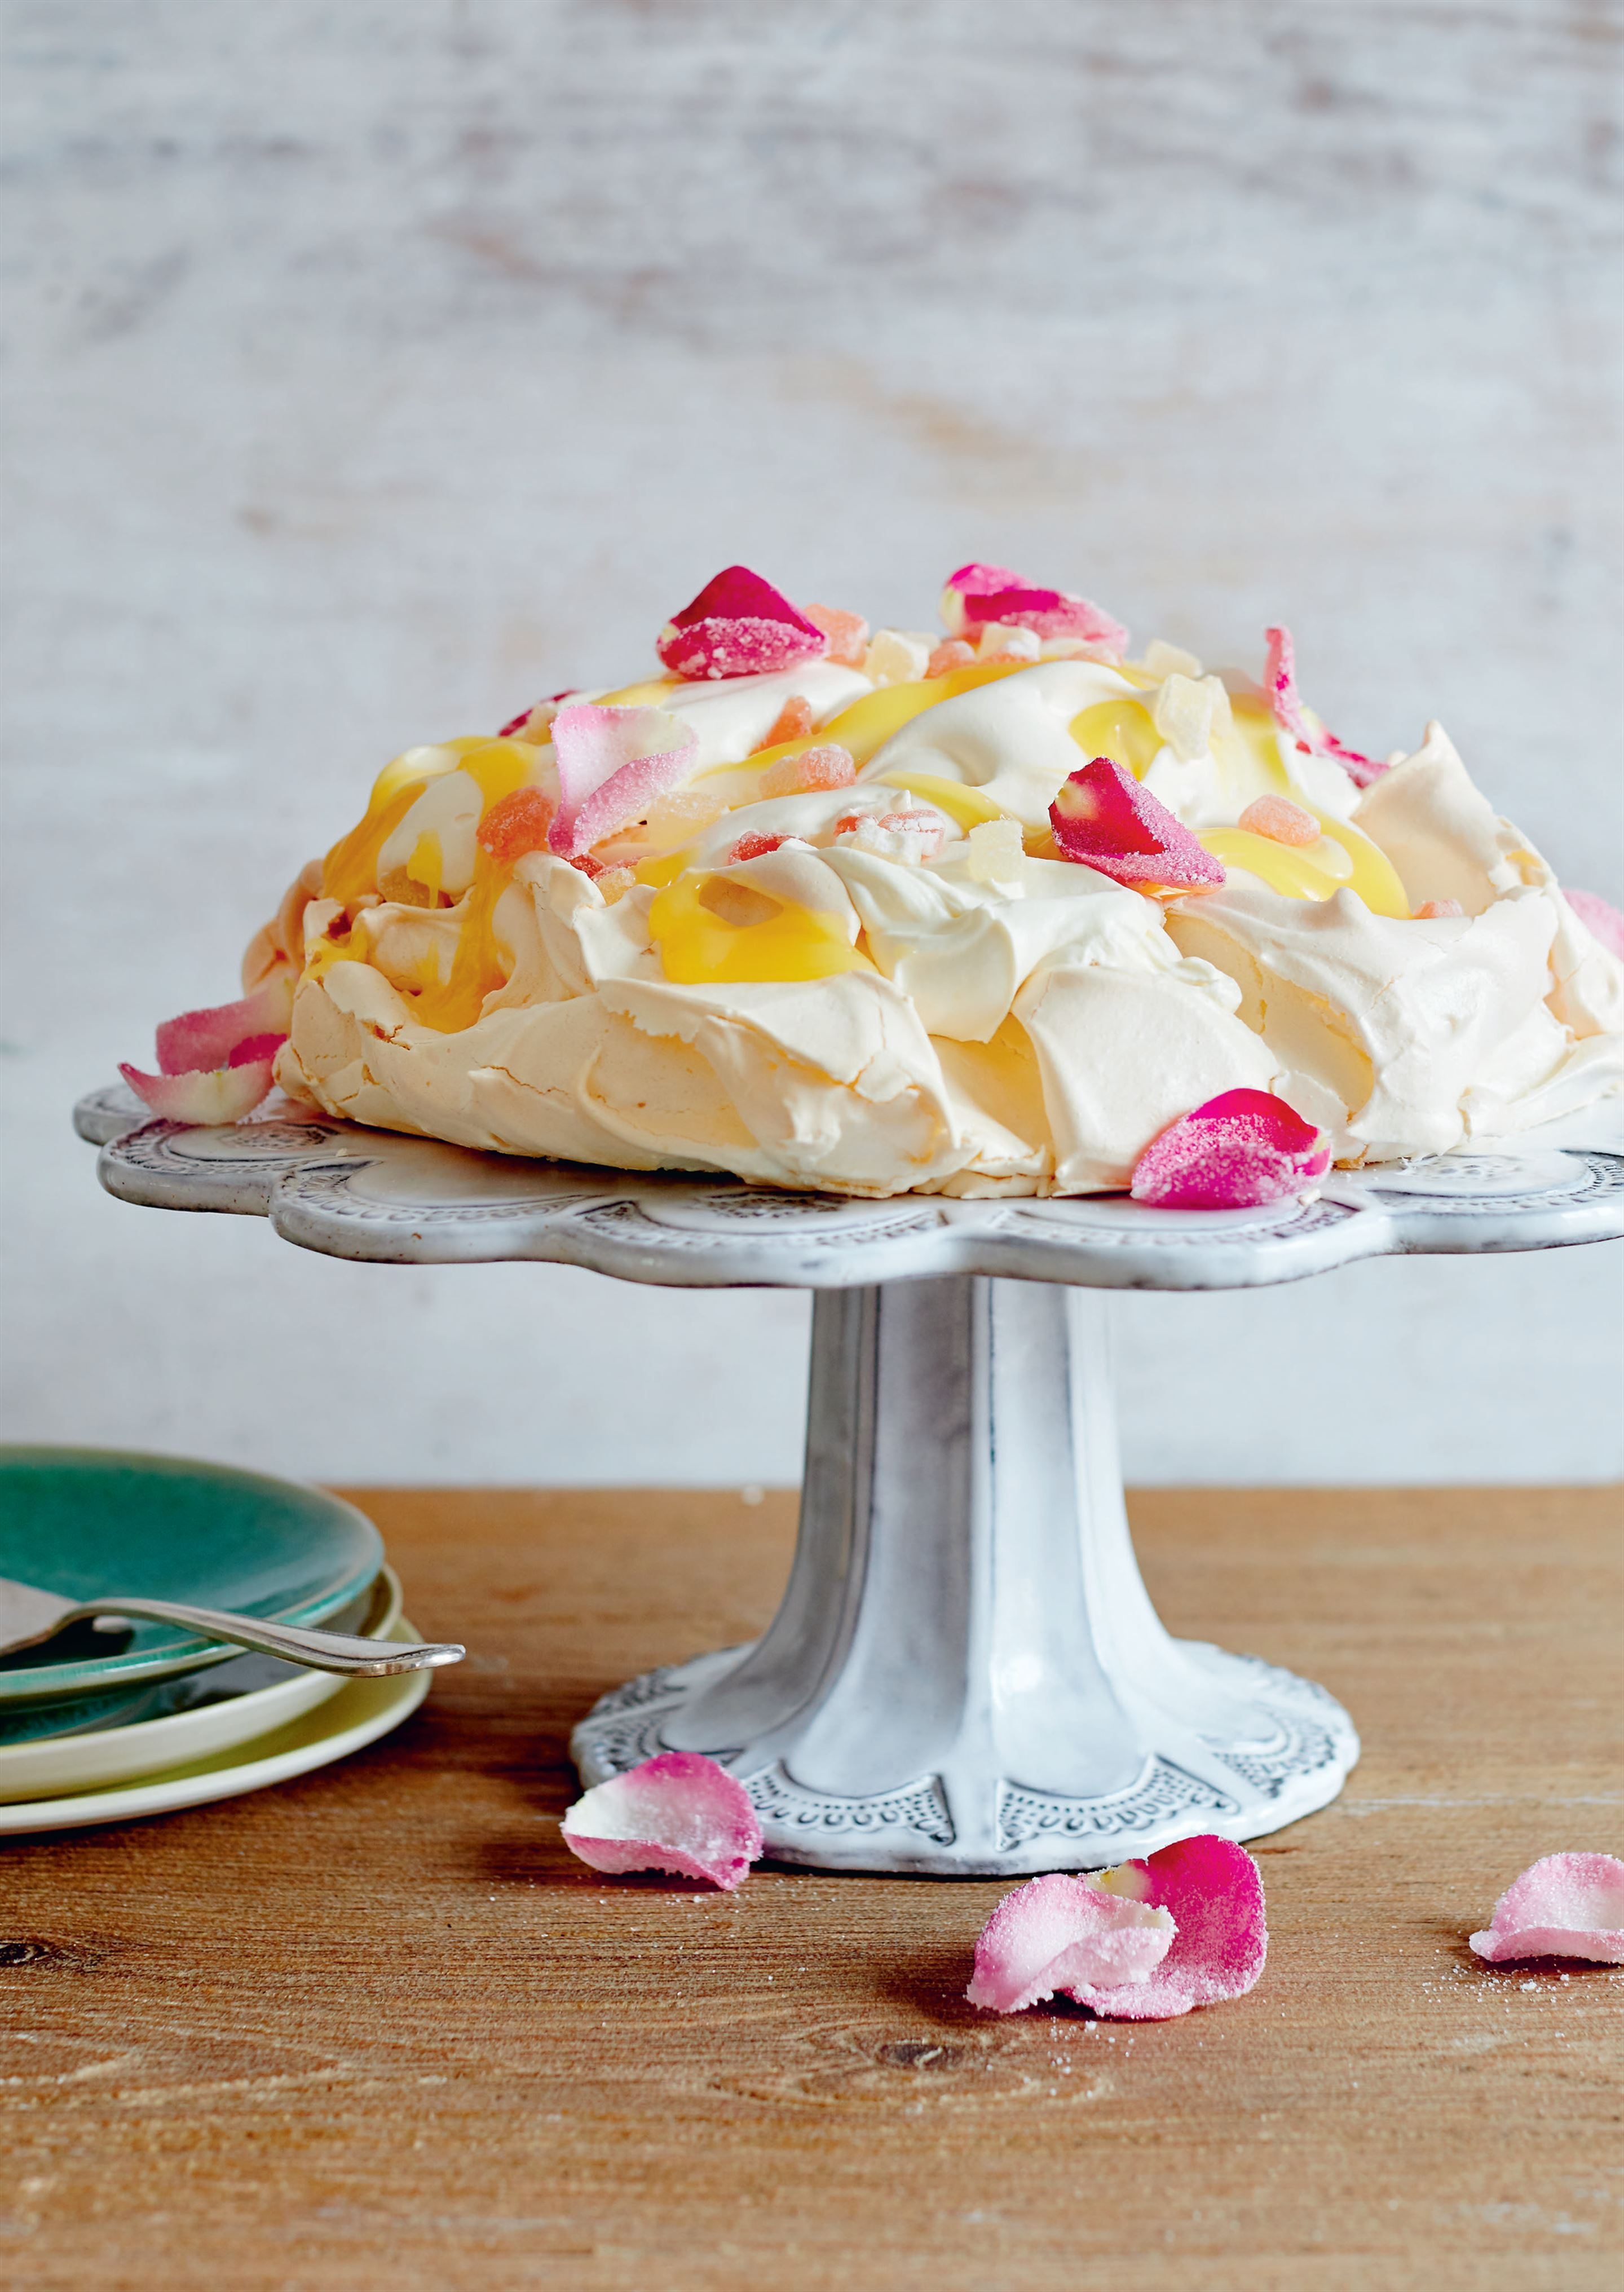 Bergamot and rose turkish delight pavlova